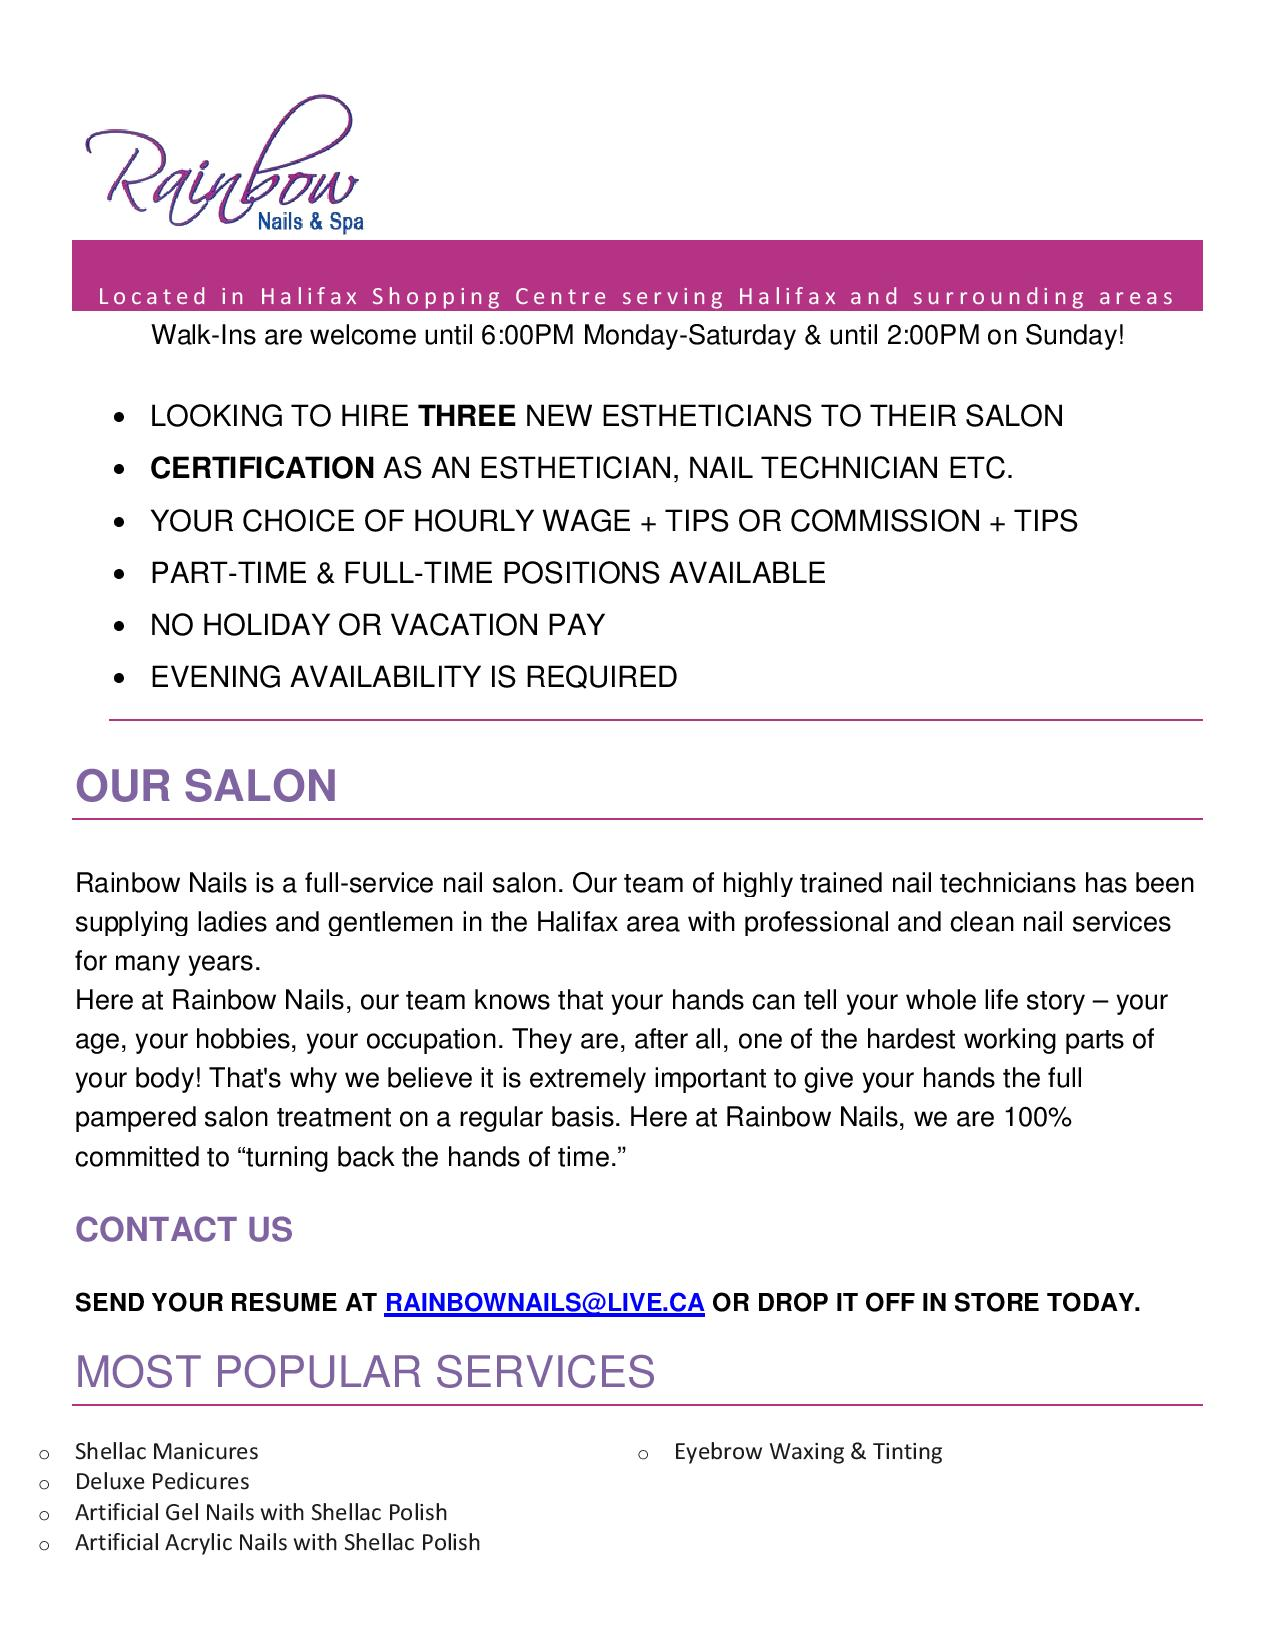 Rainbow Nails & Spa - Estheticians | Opportunity Place